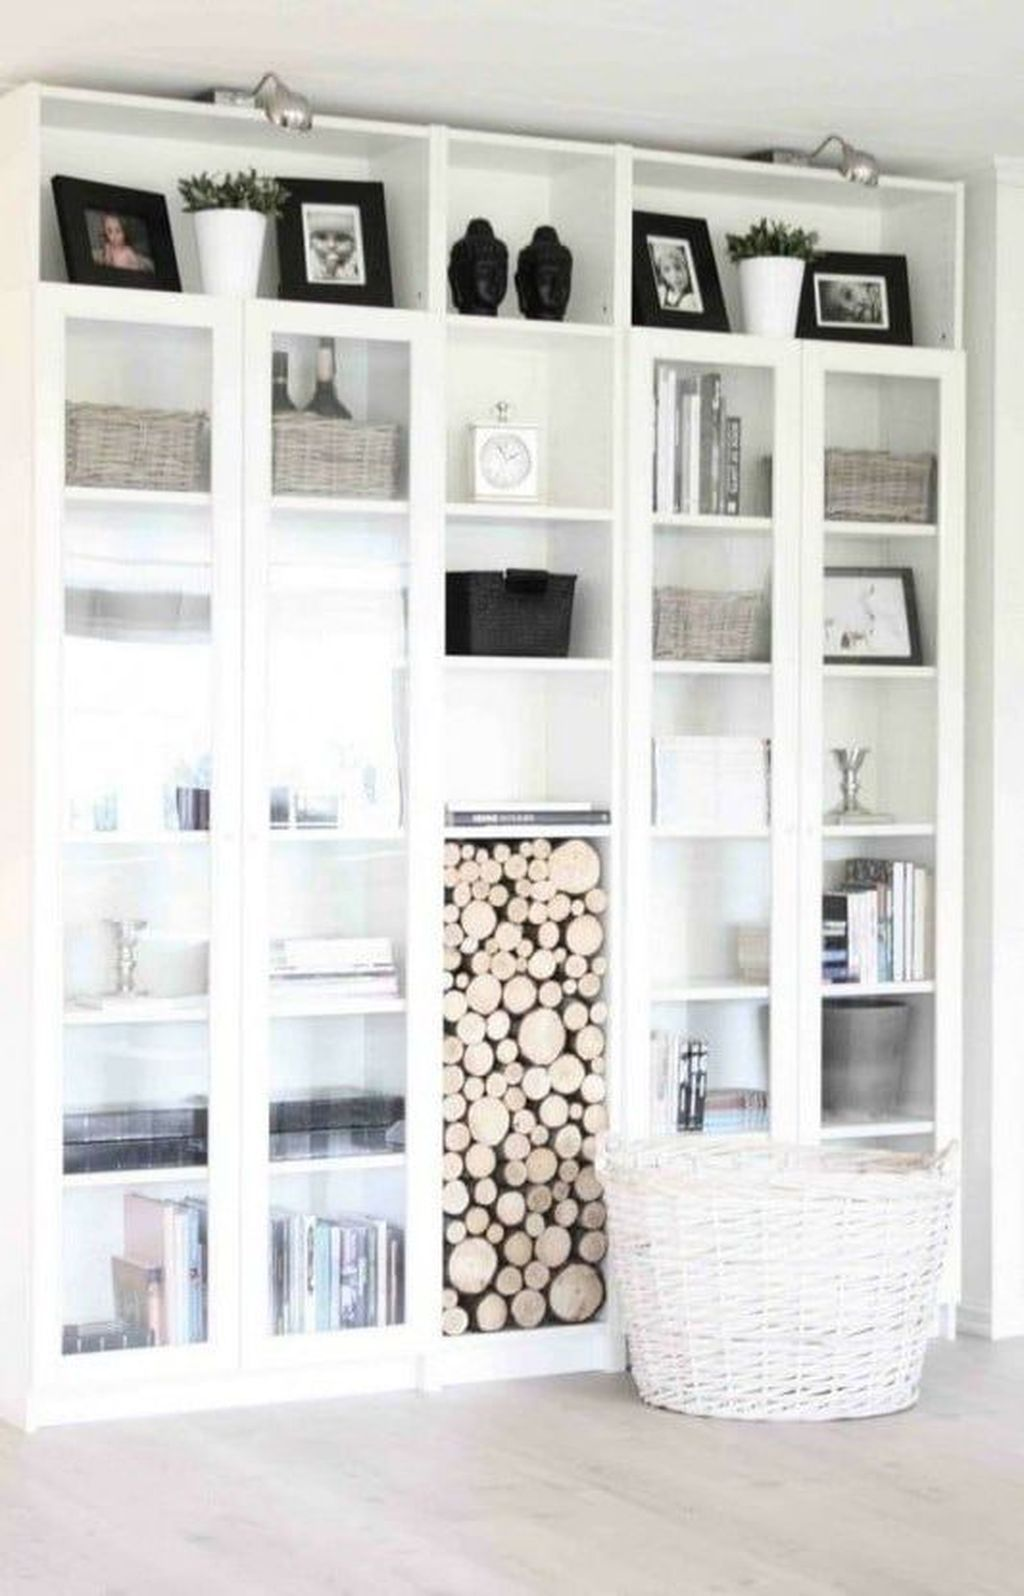 32 Latest Ikea Billy Bookcase Design Ideas For Limited Space That Will Amaze You In 2020 Bookcase Design Ikea Billy Ikea Billy Bookcase